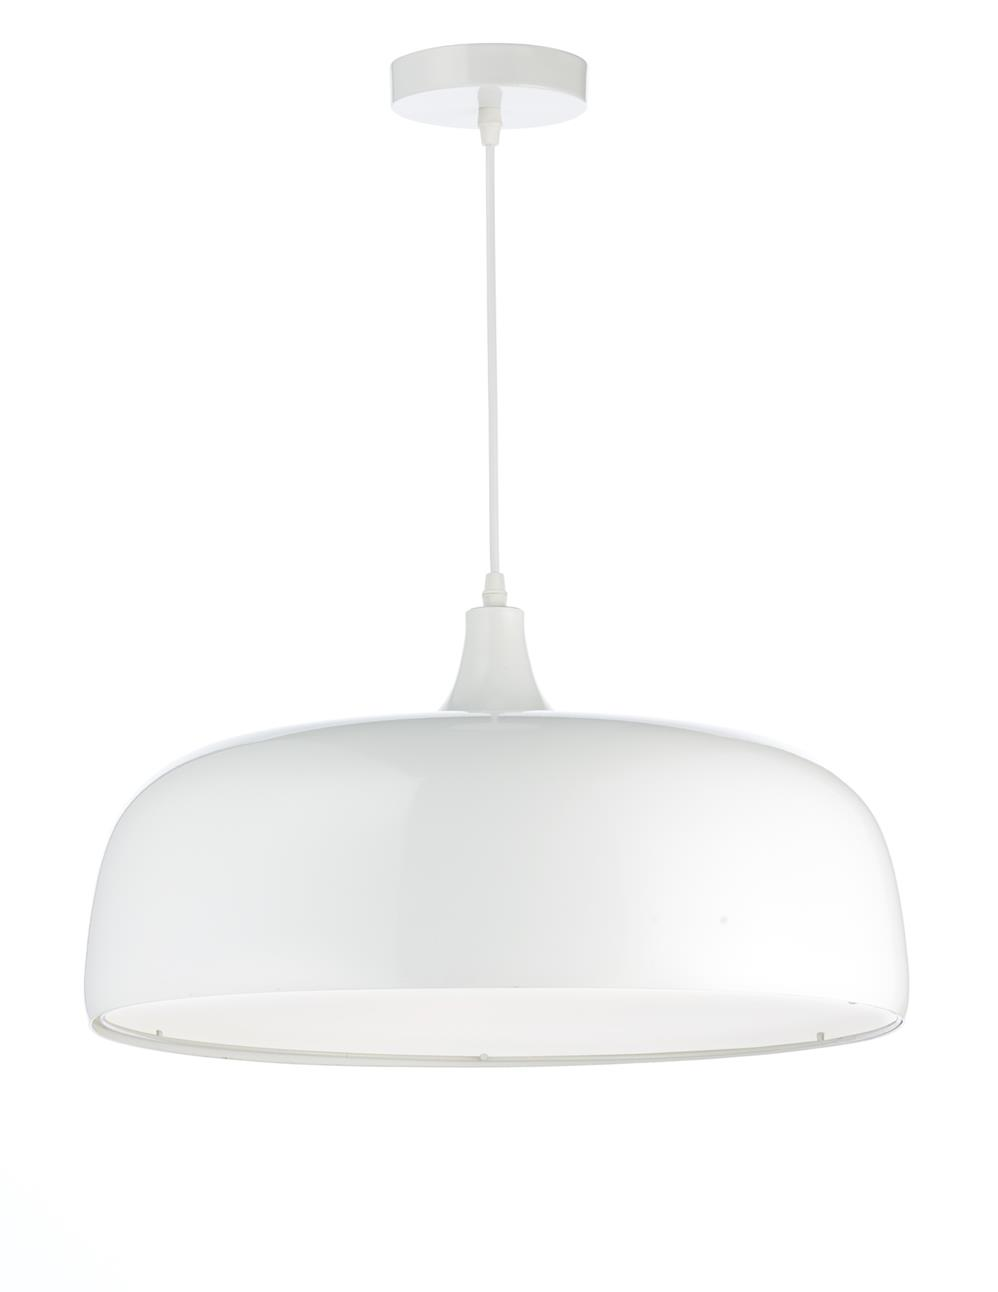 Dar GOW022 Gower 2 Light Pendant in White.